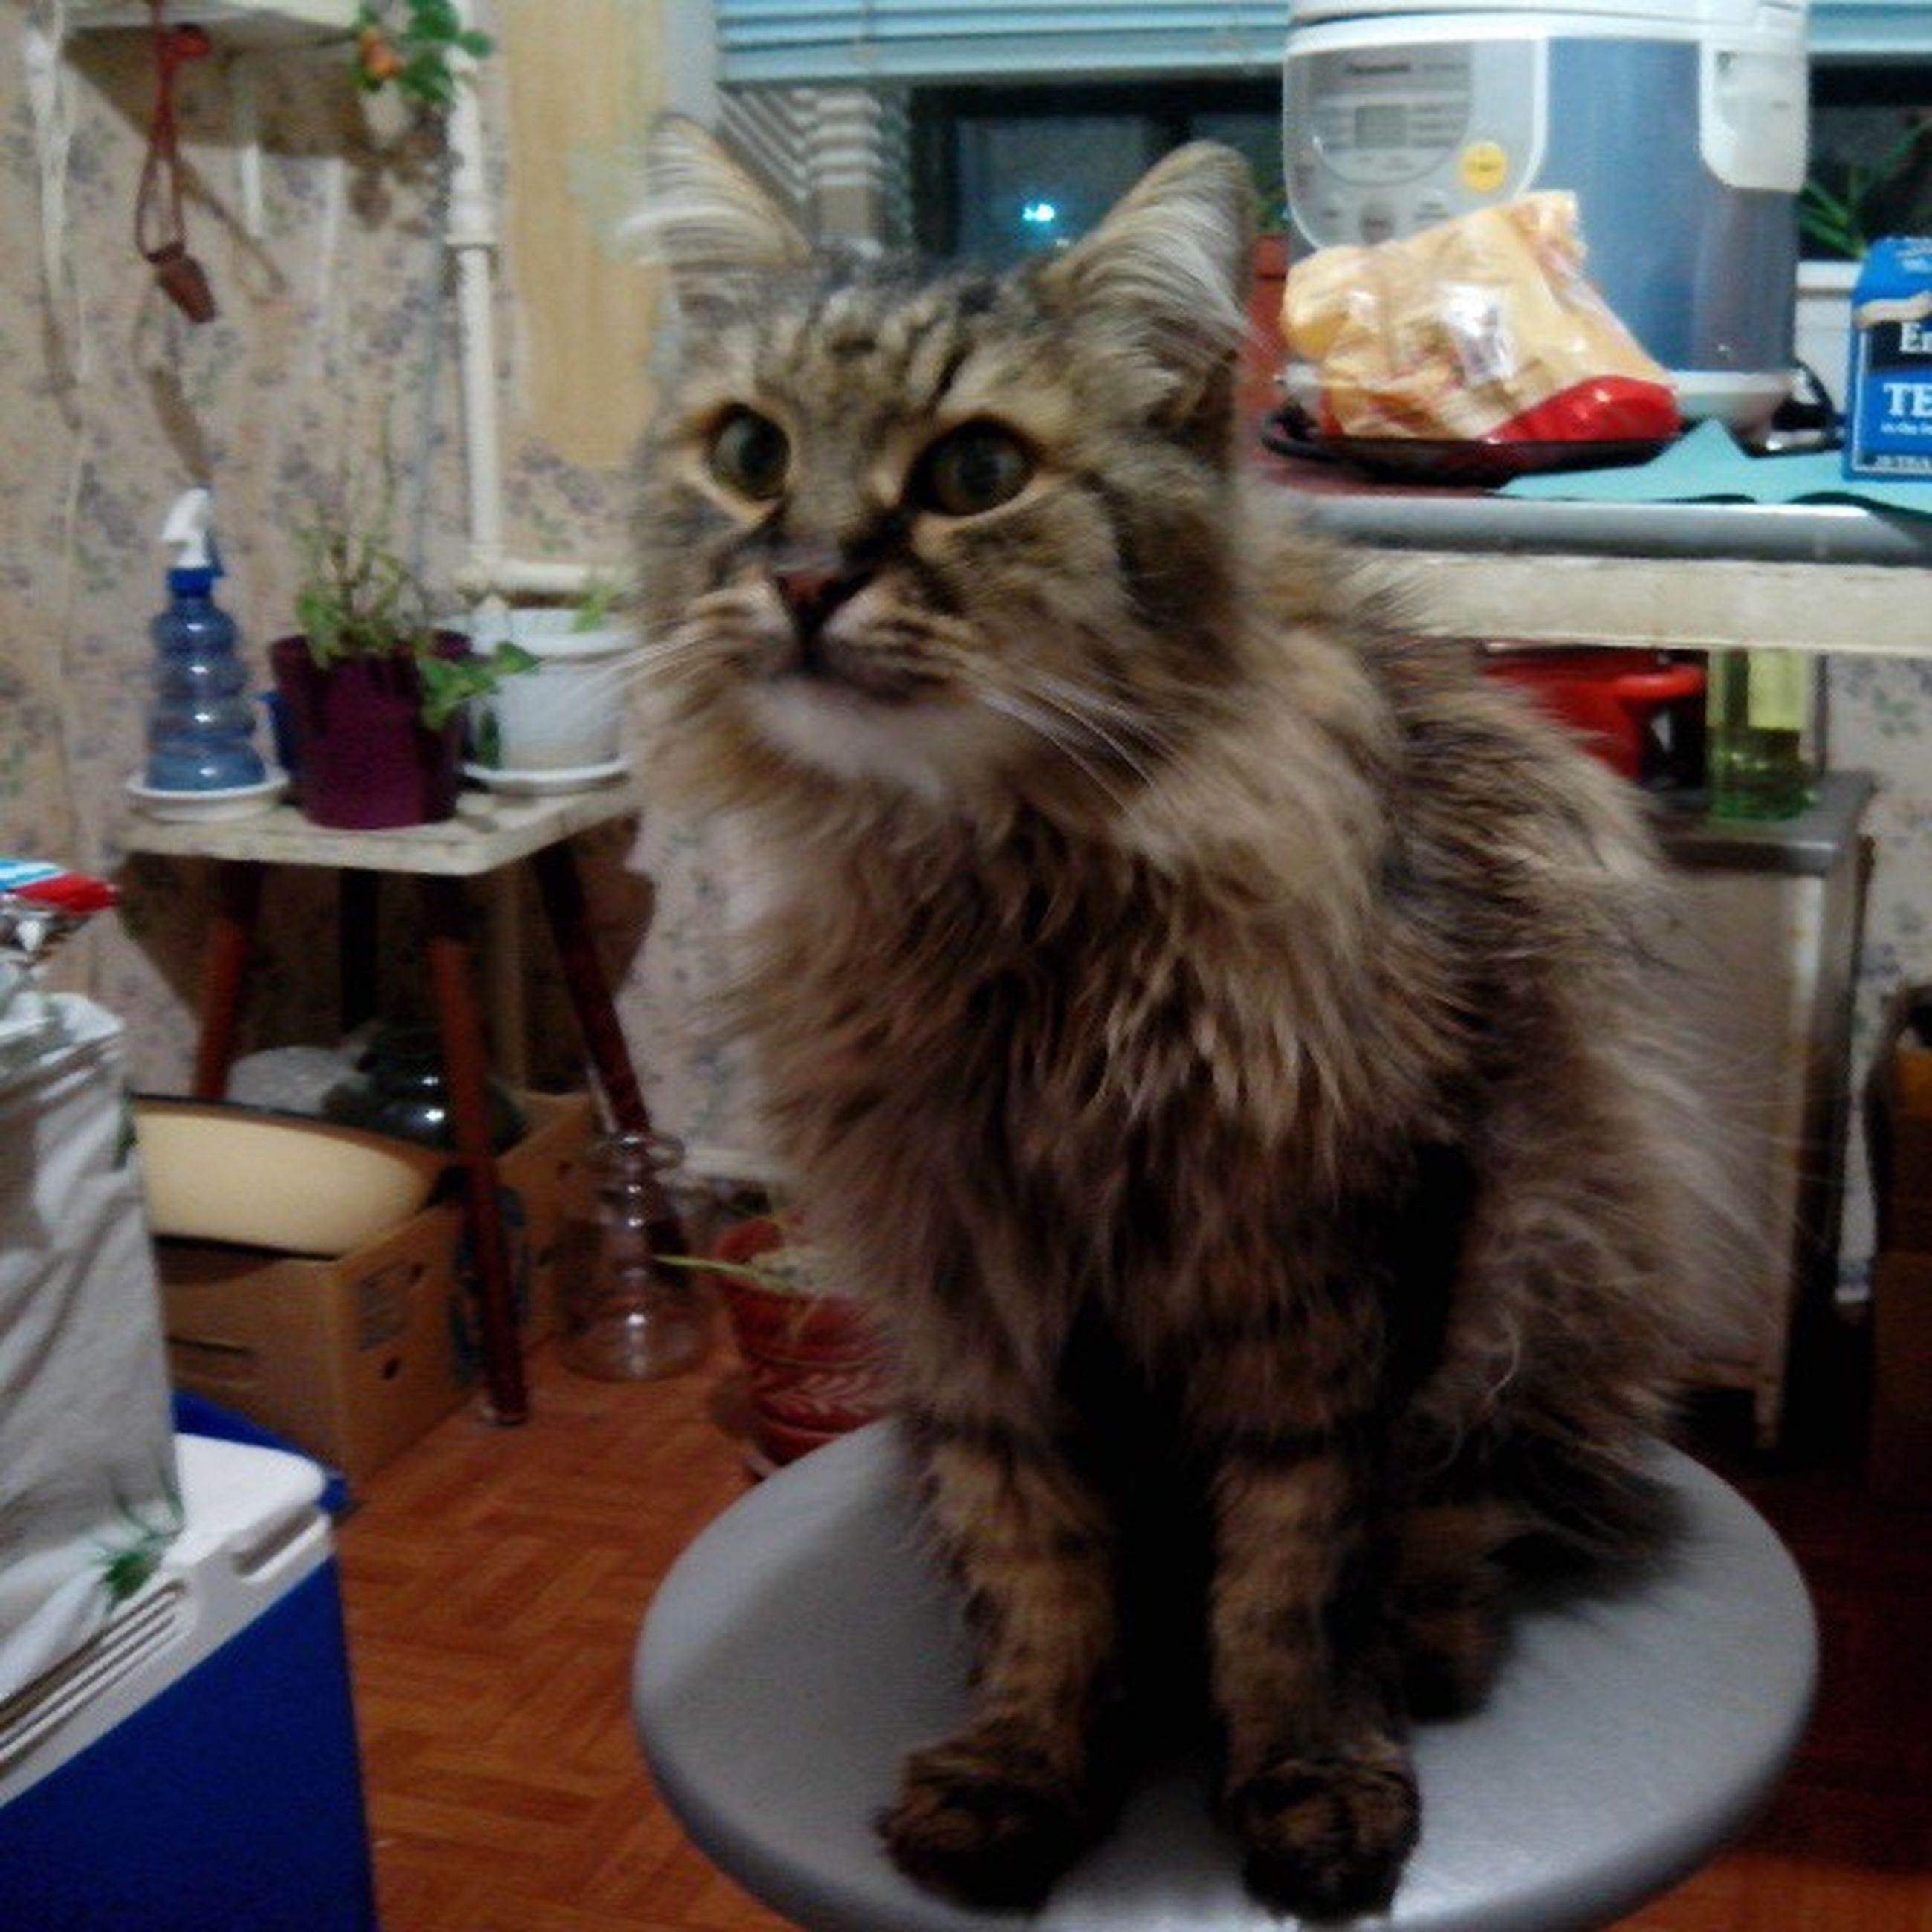 indoors, pets, domestic animals, animal themes, domestic cat, table, one animal, mammal, cat, home interior, feline, sitting, focus on foreground, portrait, close-up, whisker, home, food and drink, looking at camera, chair